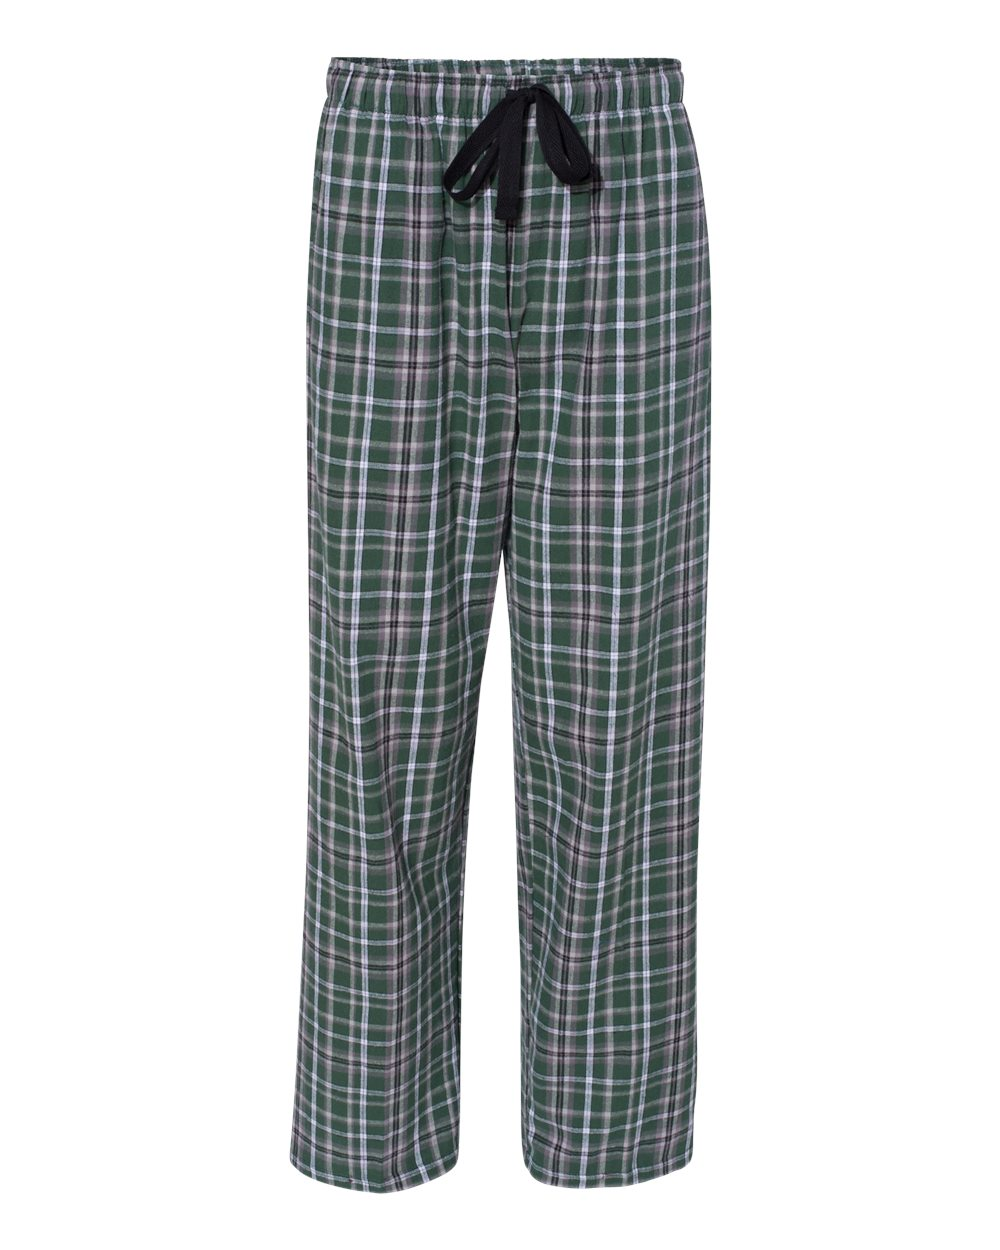 Boxercraft-Unisex-Flannel-Pants-With-Pockets-Pajama-Pants-F20-up-to-2XL thumbnail 18